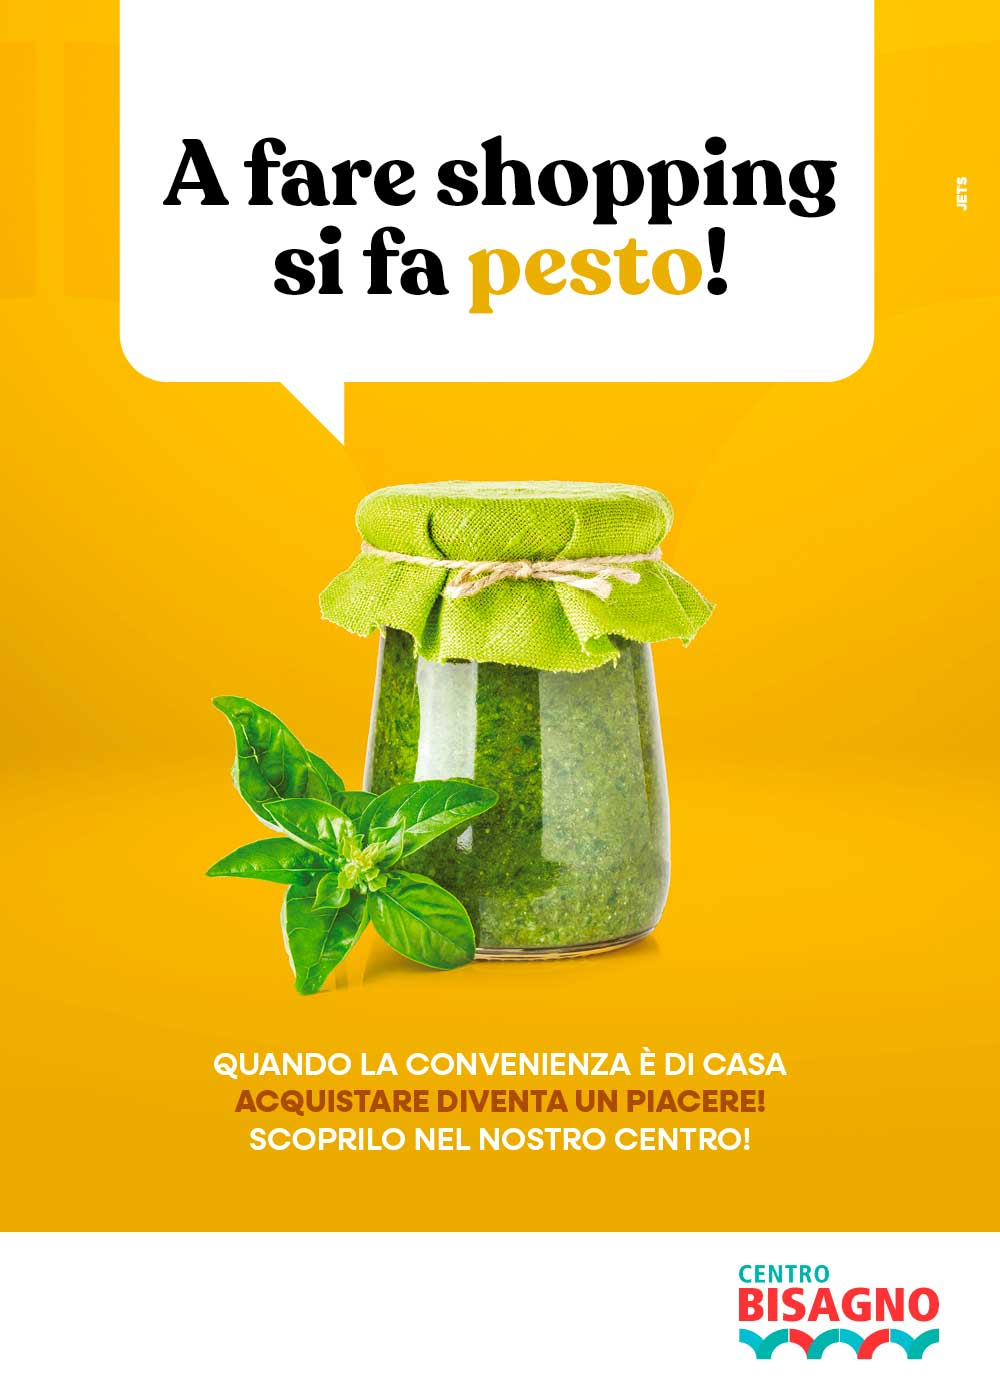 A fare lo shopping si fa pesto!